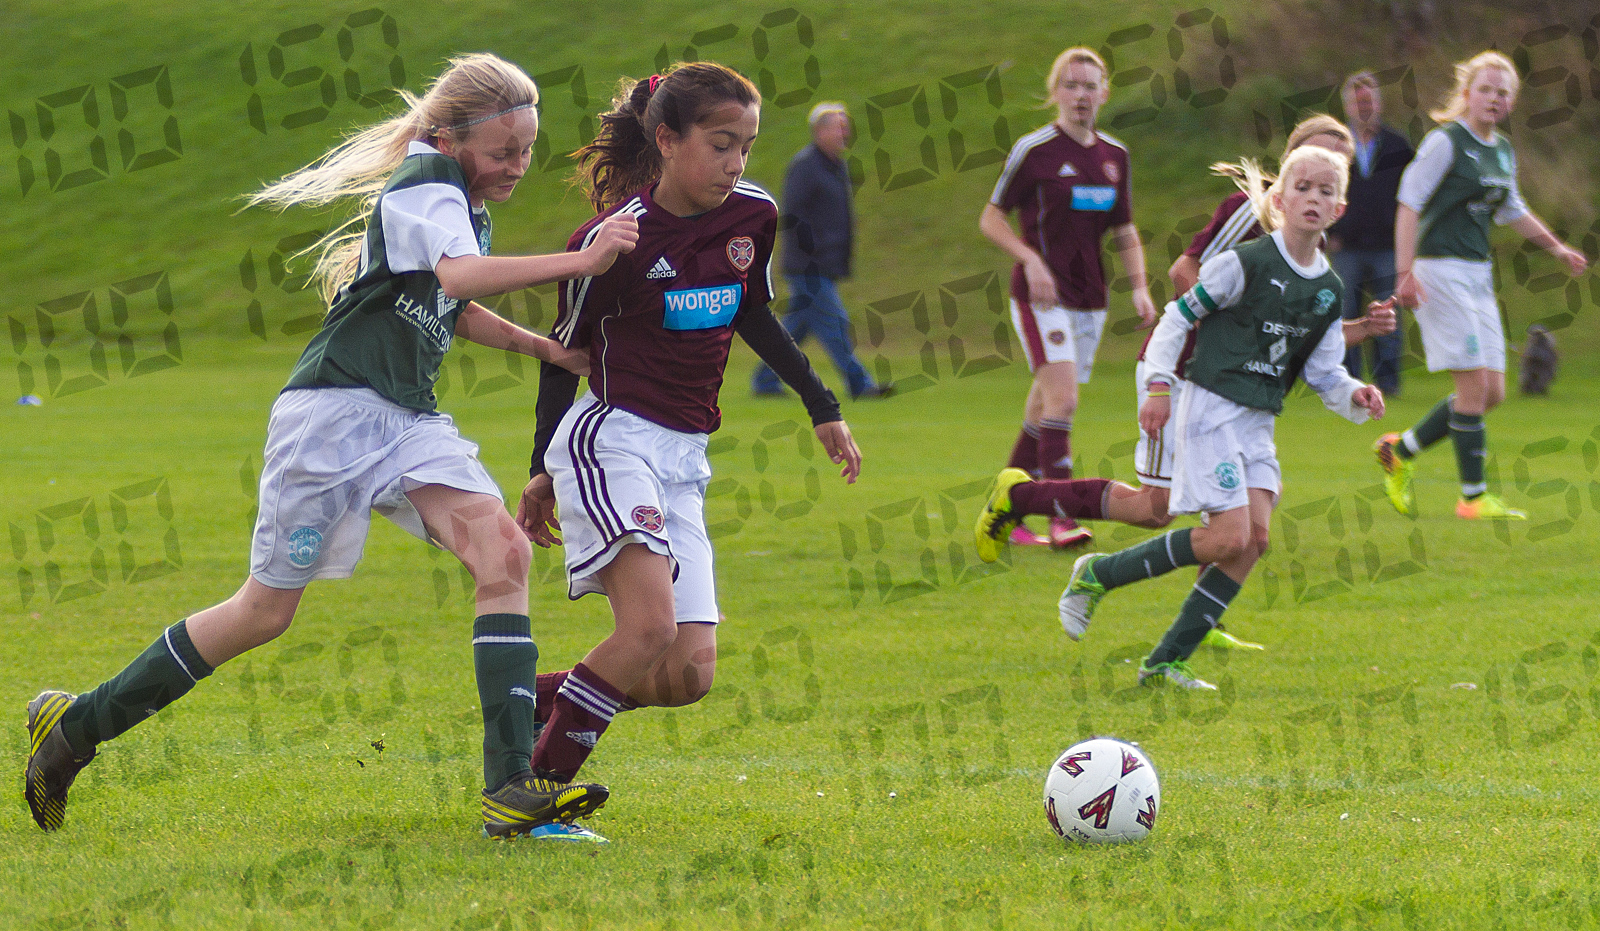 Hibs_v_Hearts_girls_13s-11.jpg